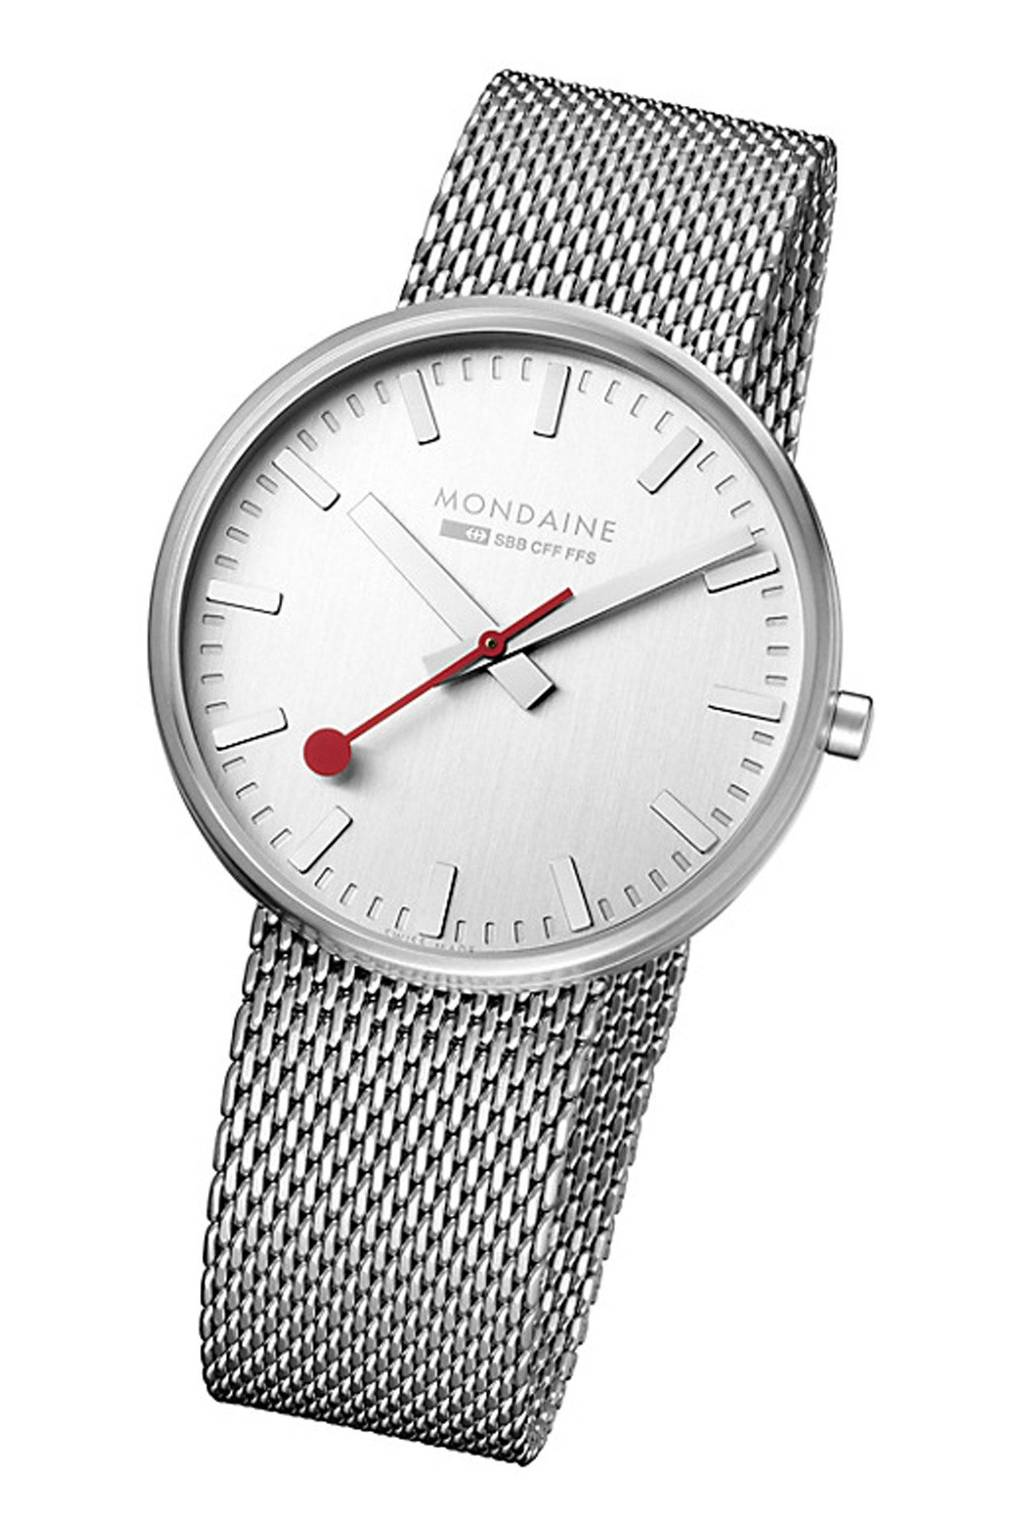 every straps best mesh watches watch milanese gq gallery budget b for the strap british mens pr